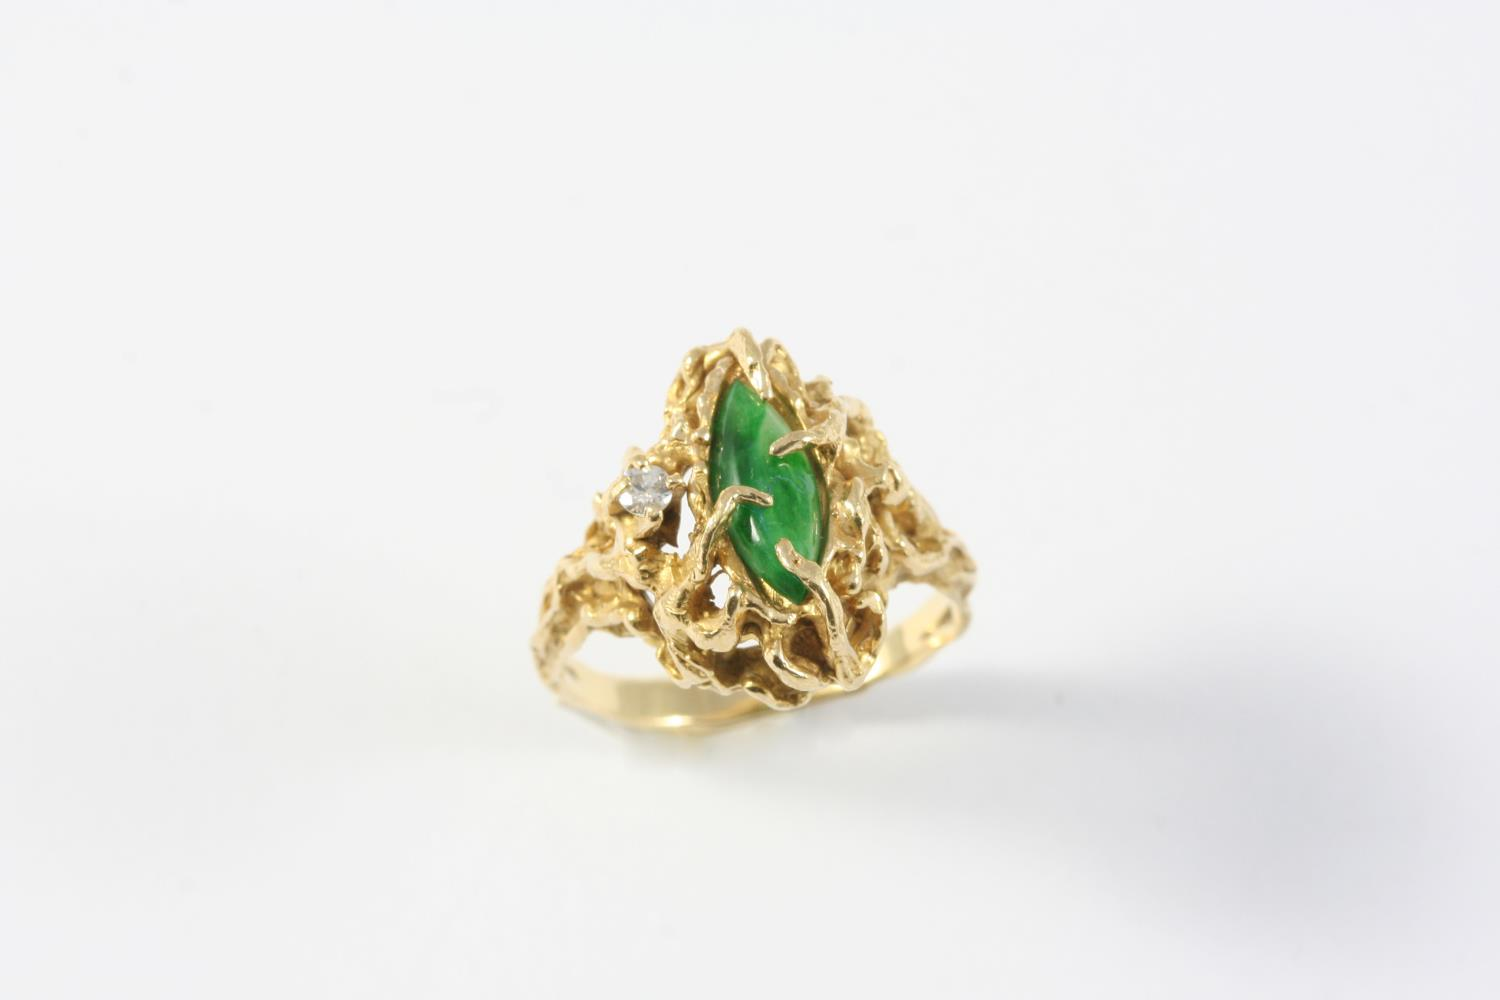 A JADE AND DIAMOND RING the marquise-shaped jade is set with a circular-cut diamond in openwork